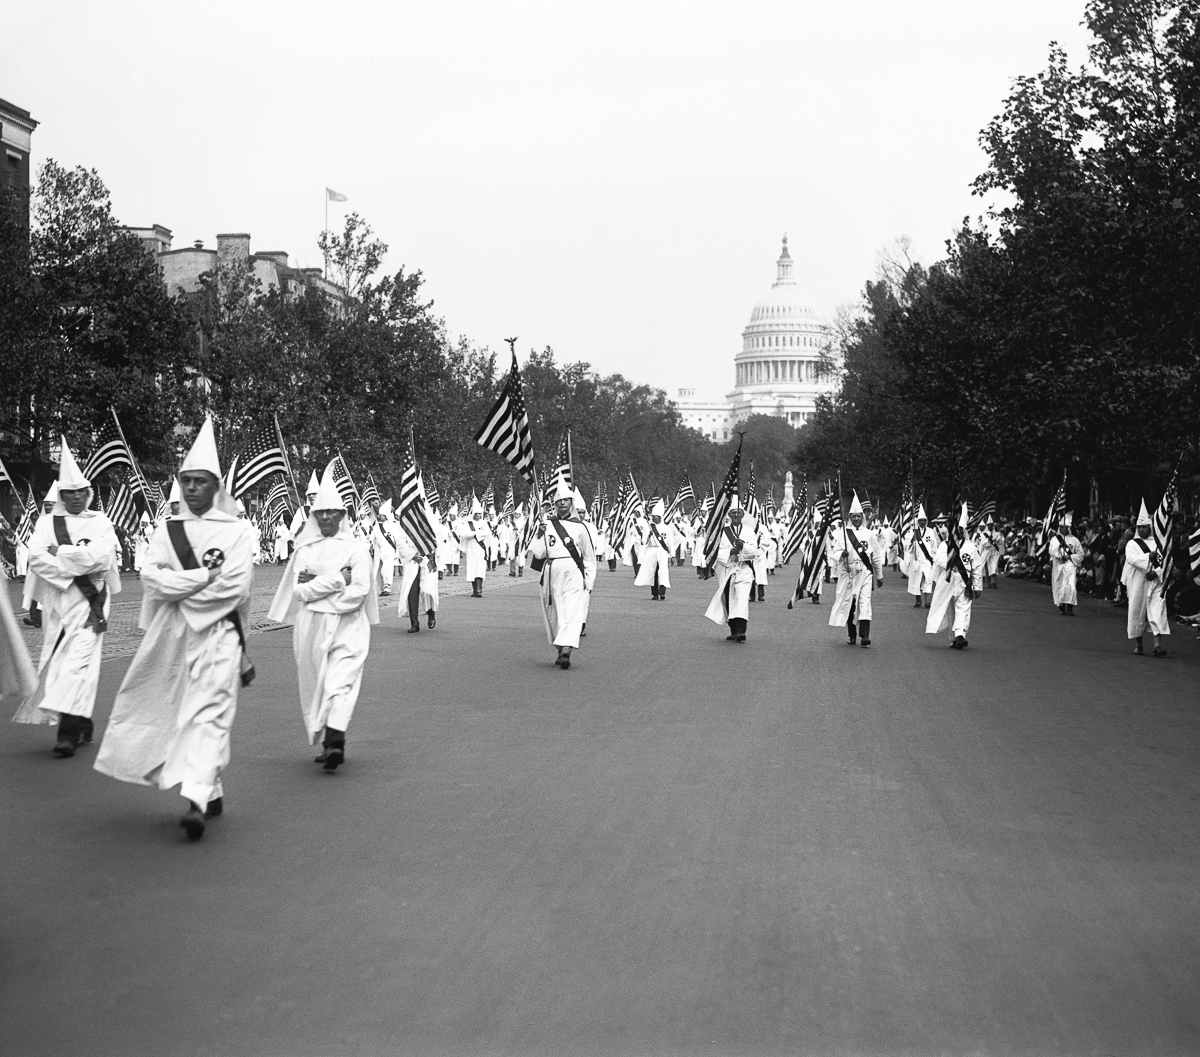 an introduction to the issue of prejudice of ku klux klan